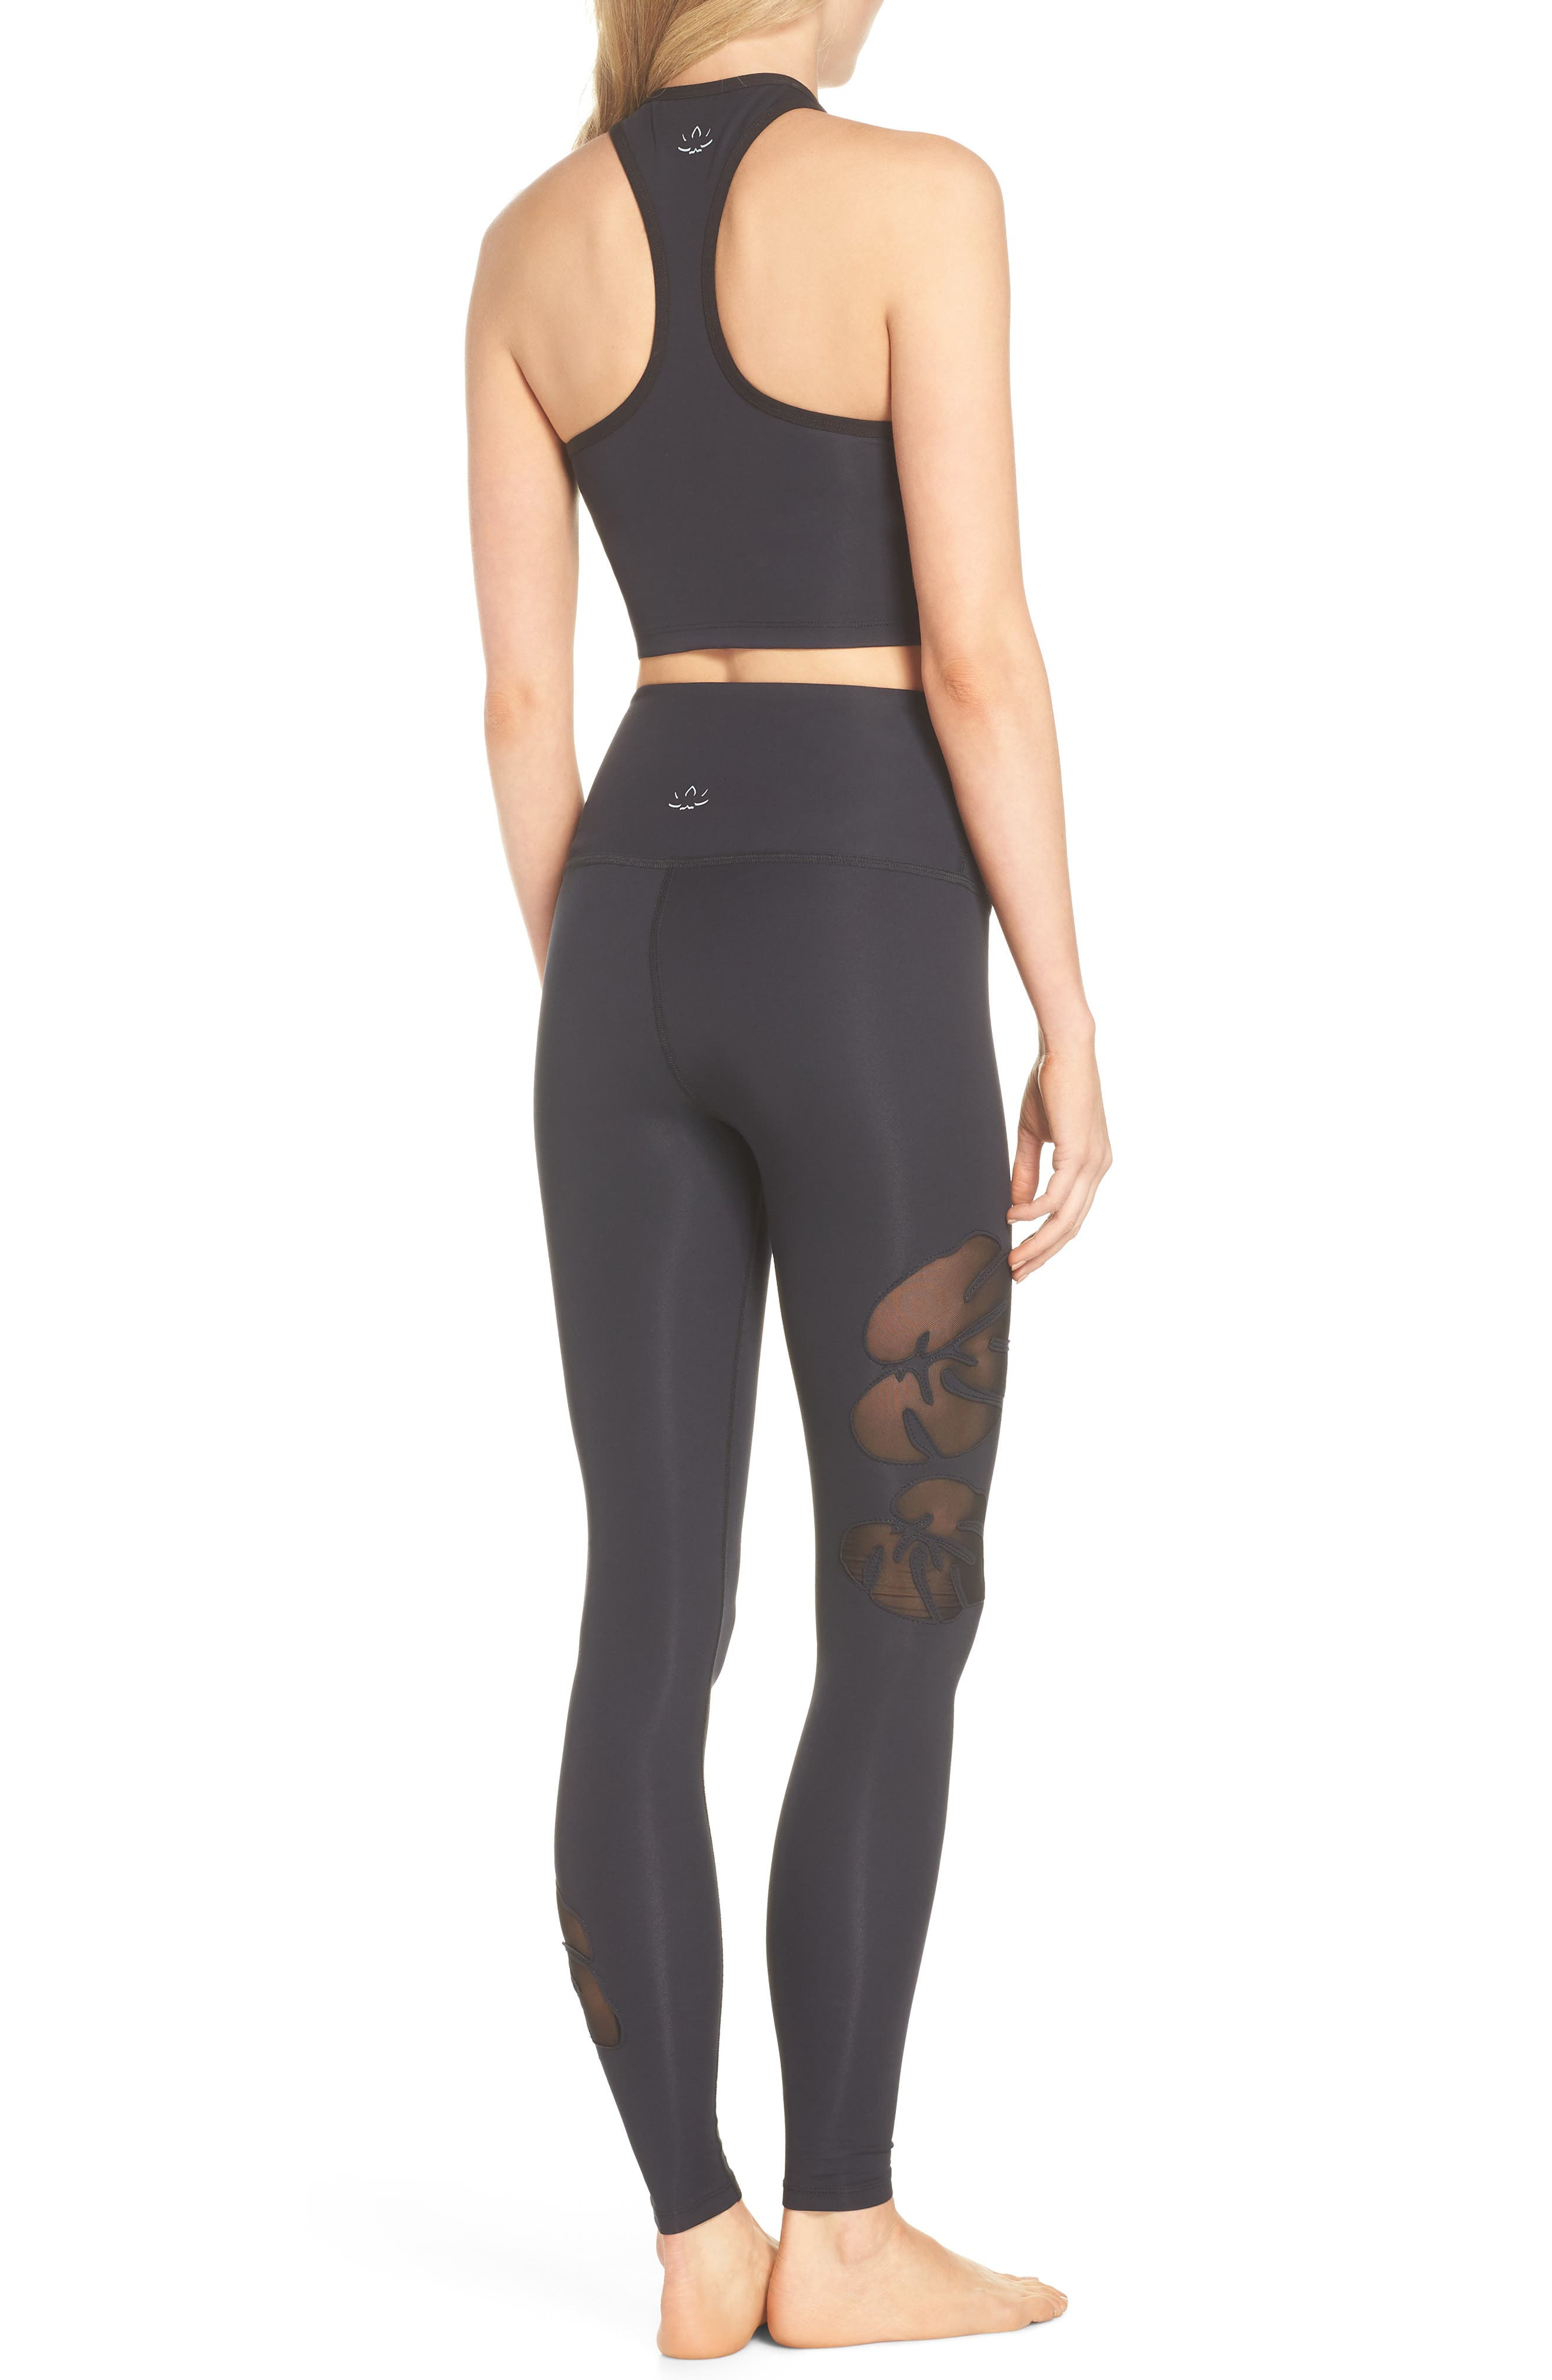 Take Leaf High Waist Leggings,                             Alternate thumbnail 3, color,                             Black